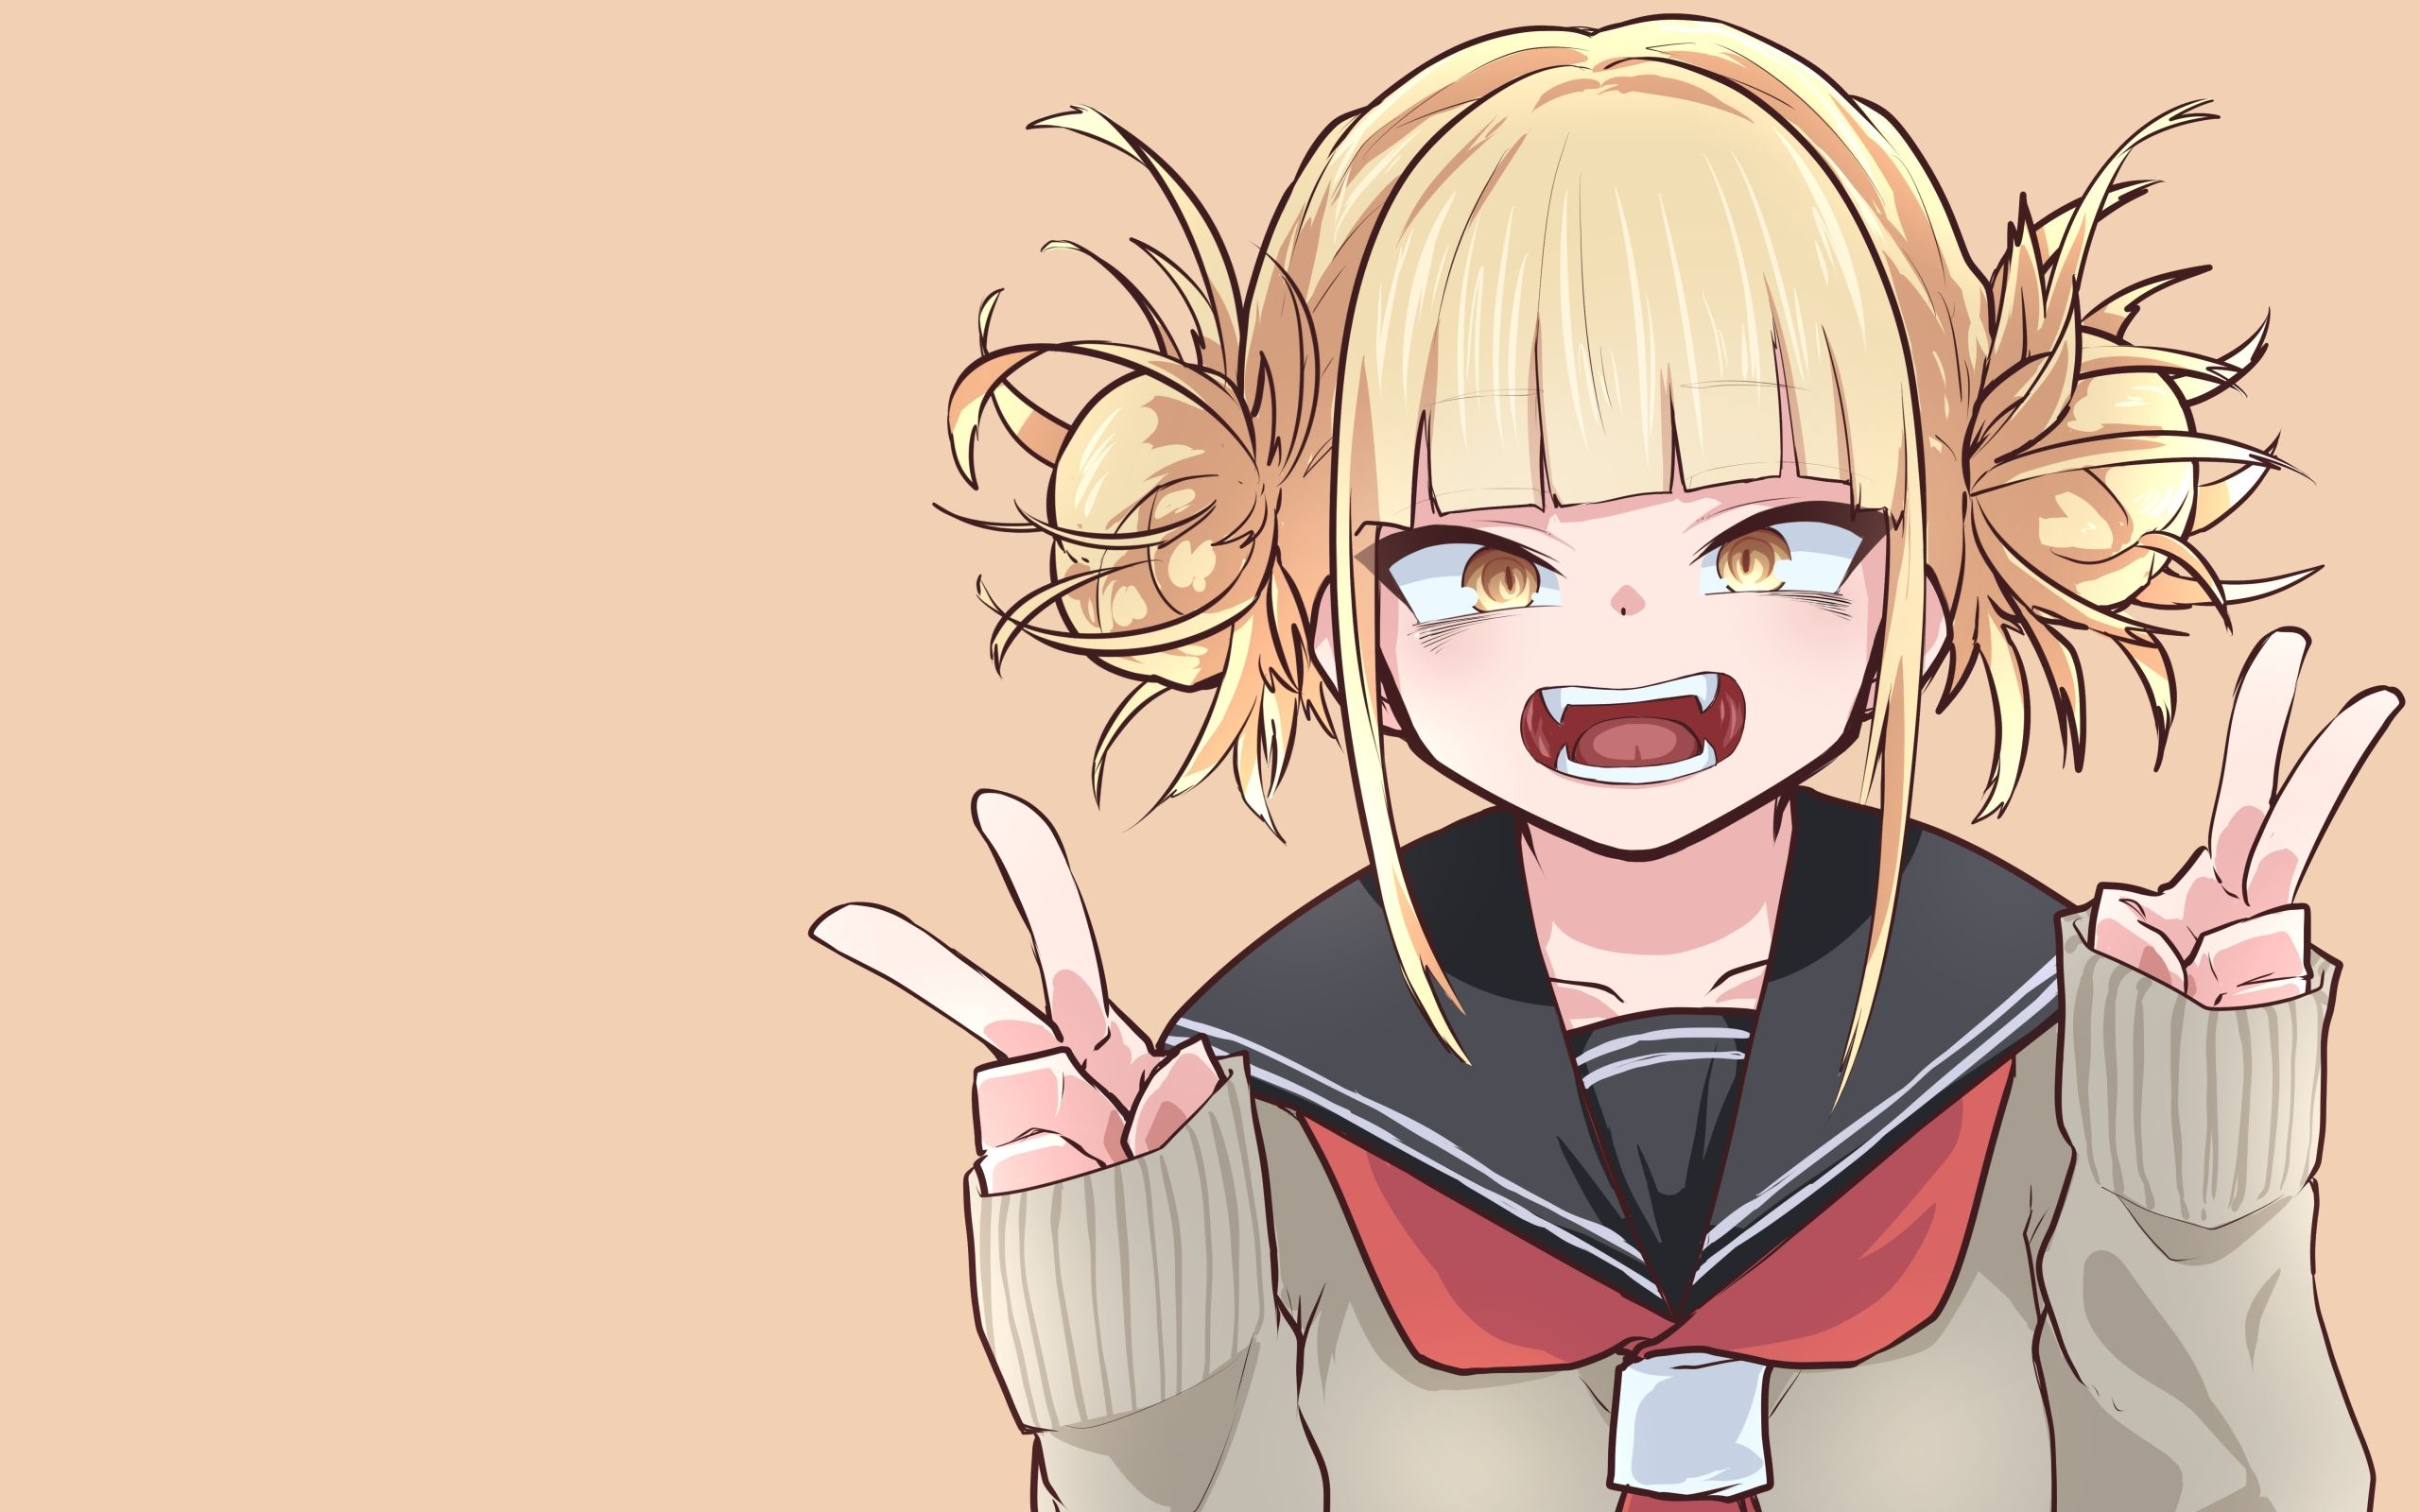 Himiko Toga Wallpapers Top Free Himiko Toga Backgrounds